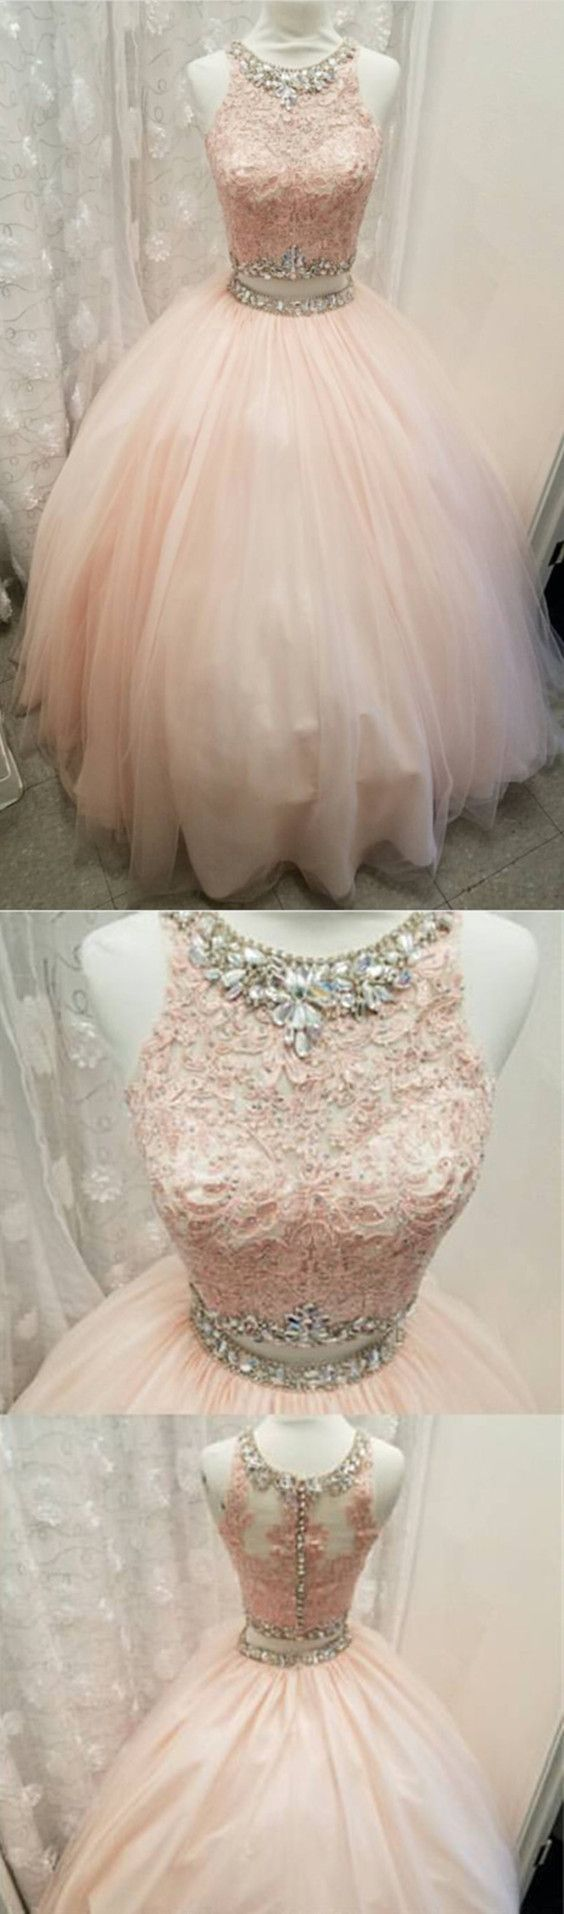 New Fashion Ball Gown Prom Dresses with Appliques,